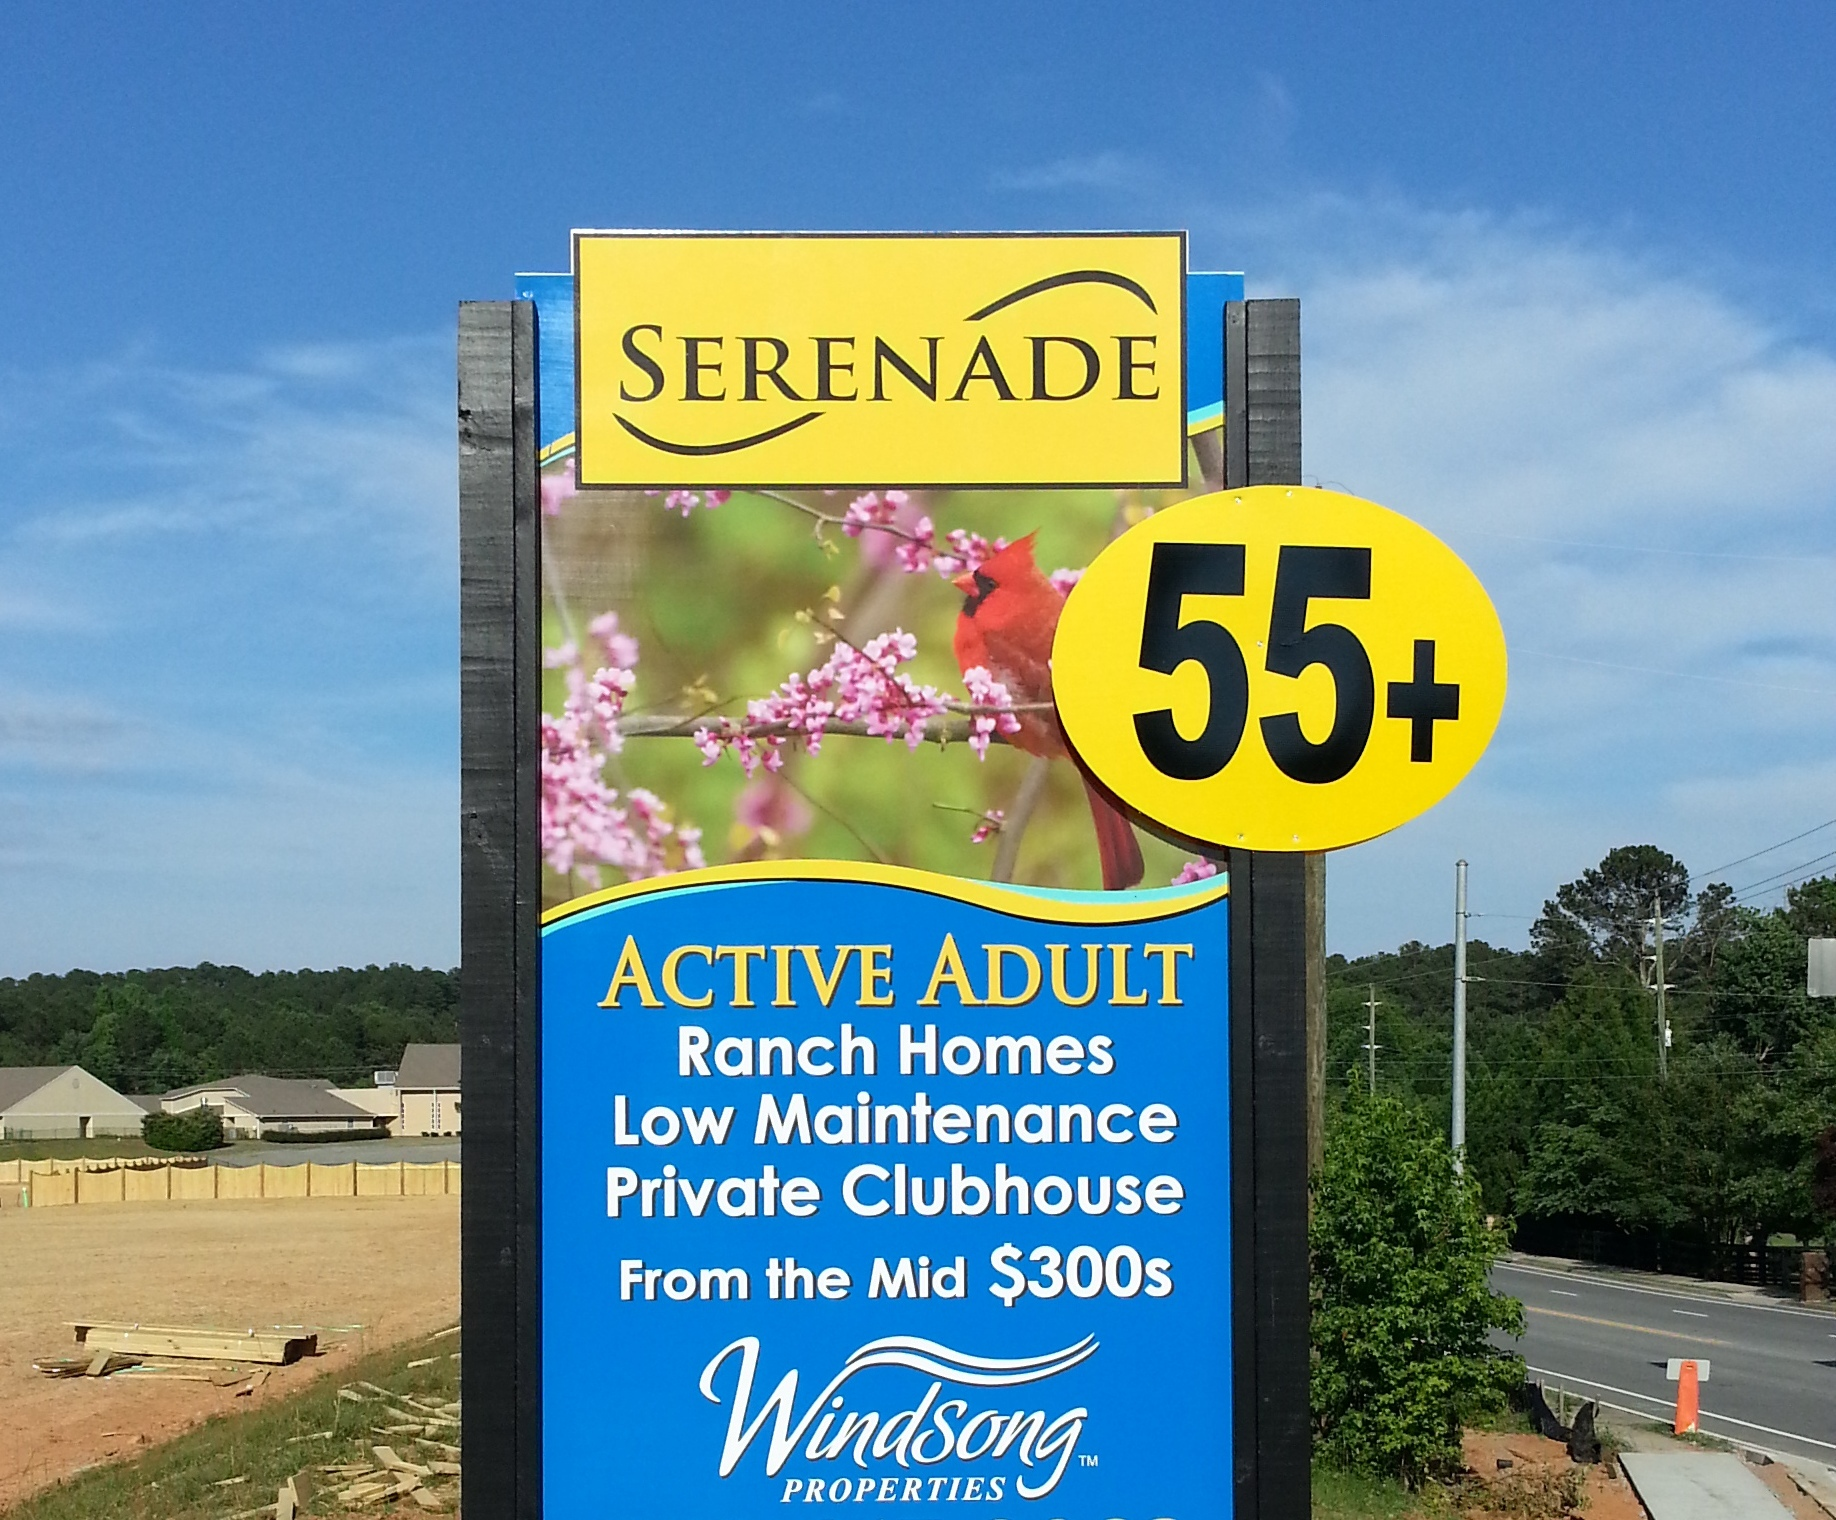 Serenade by Windsong Properties 55+ Kennesaw